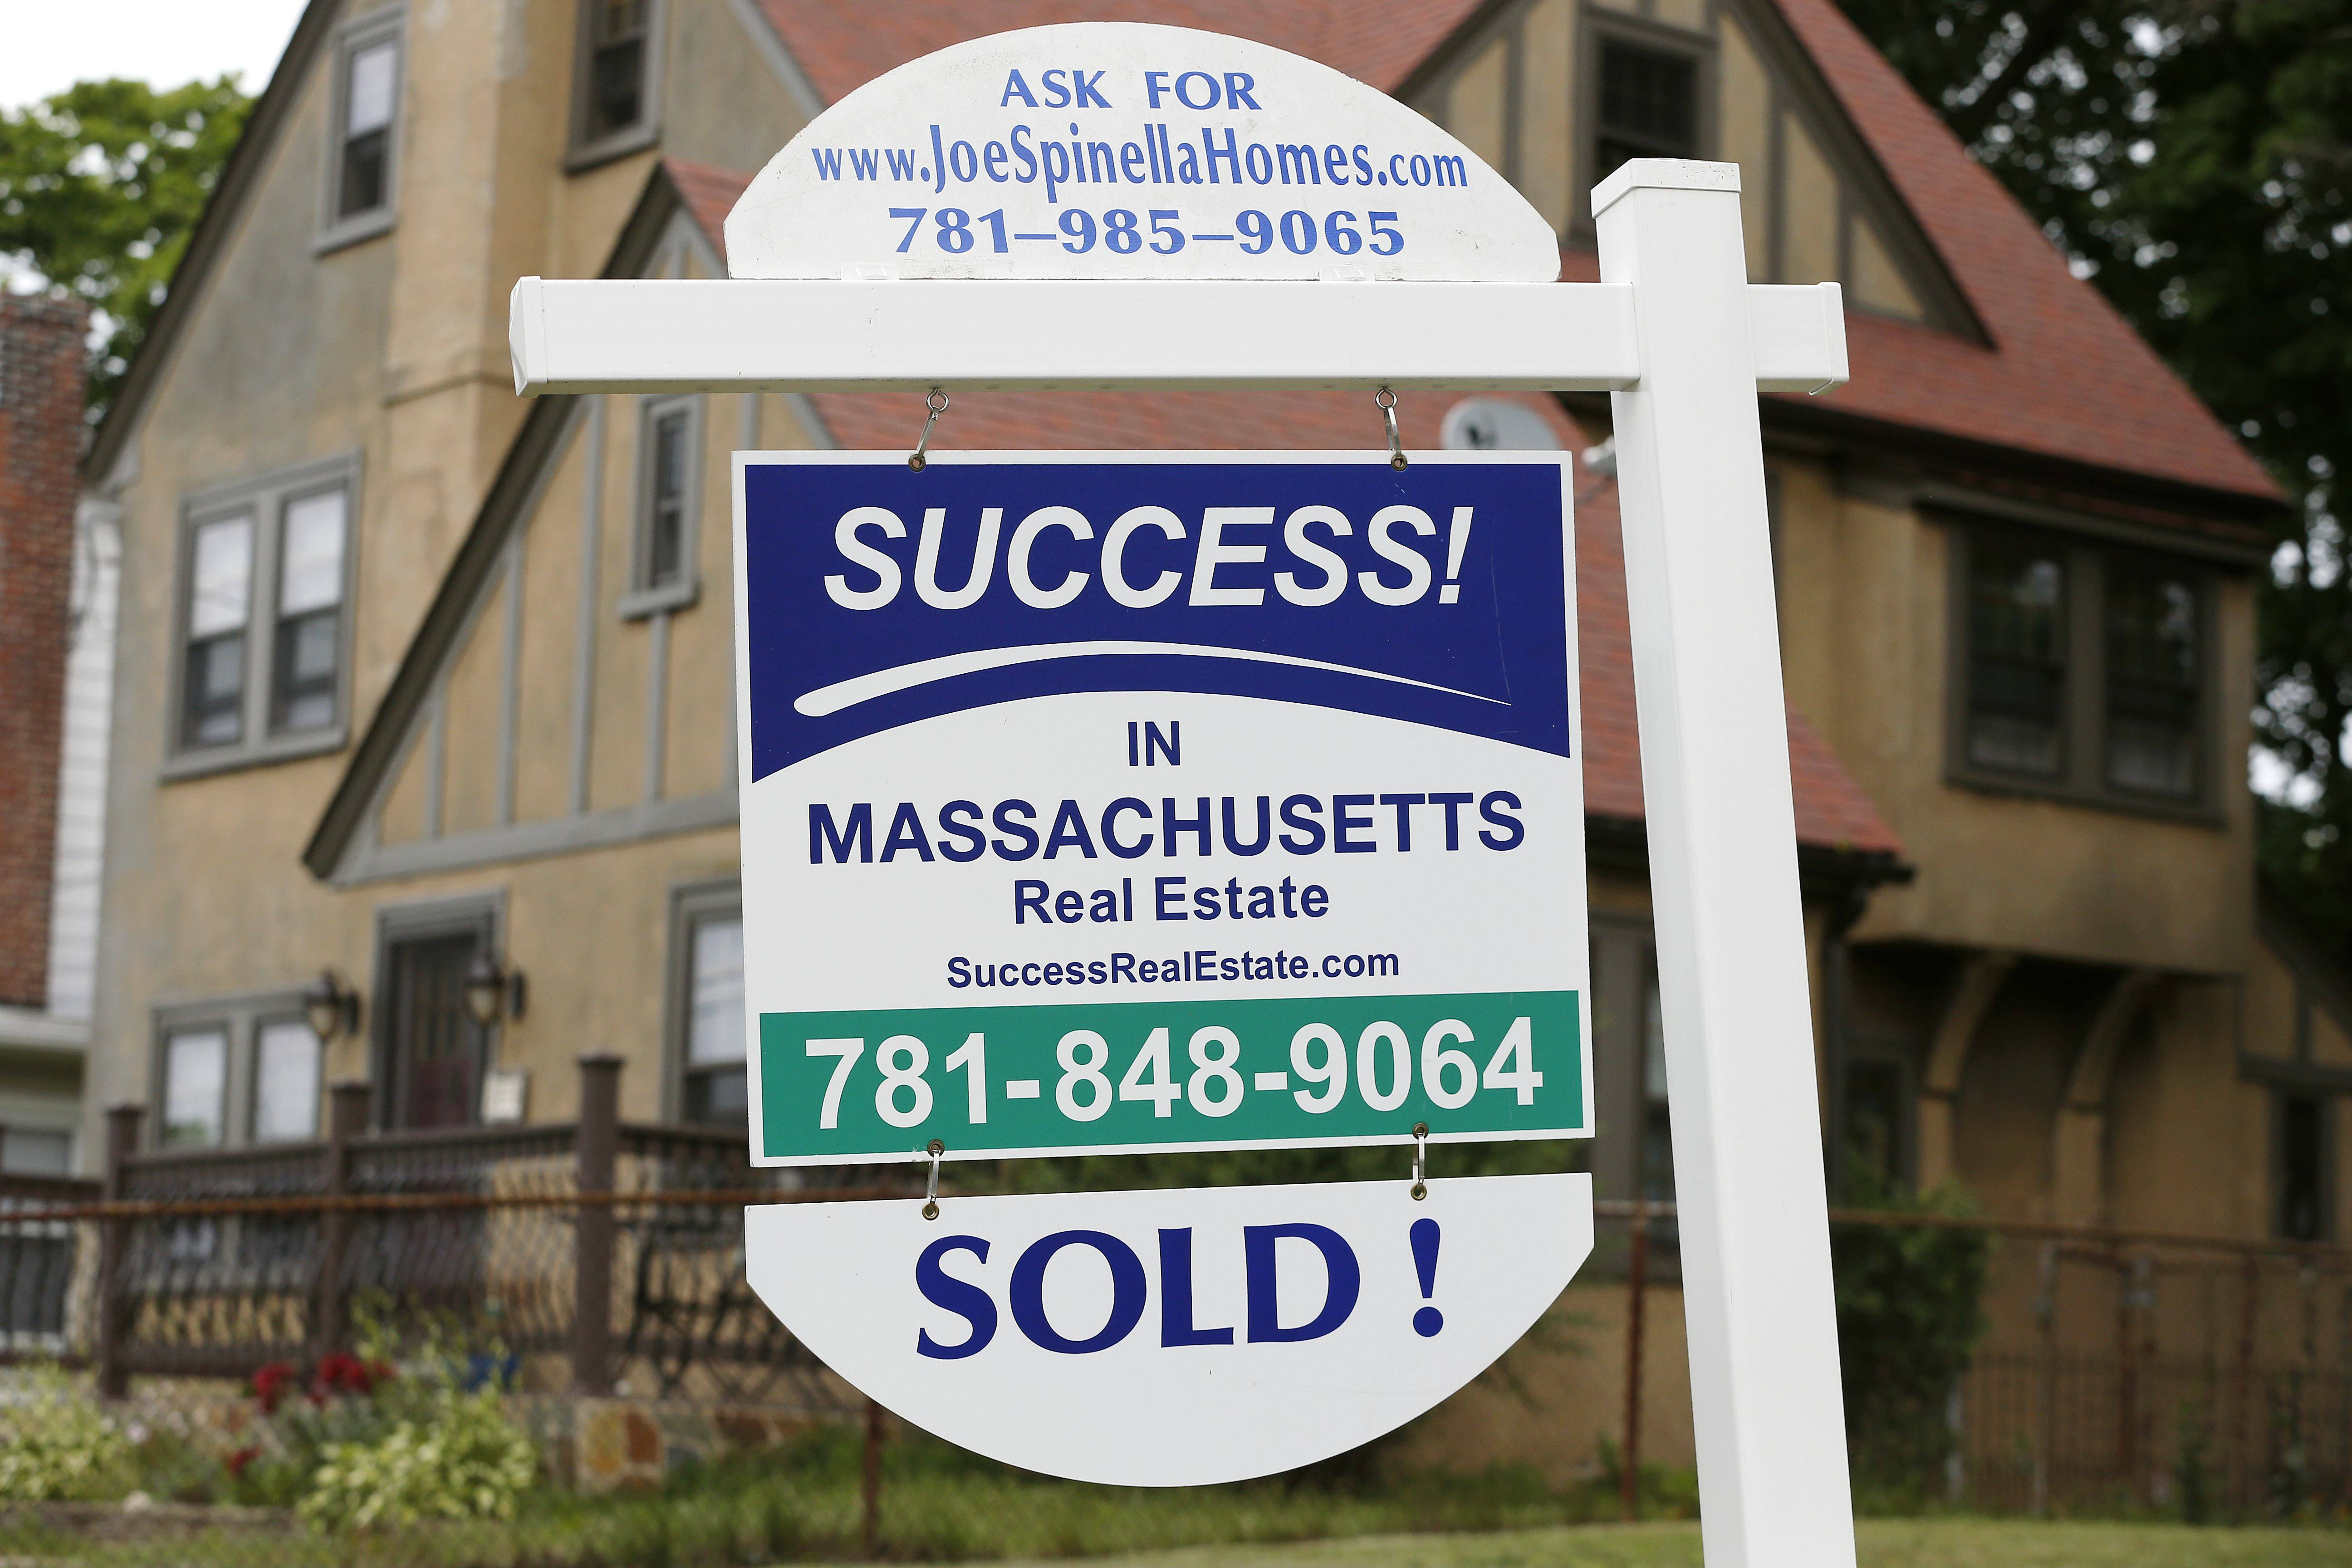 U.S. home prices rose in June by the smallest year-over-year amount in 20 months, slowed by modest sales and more properties coming on the market.